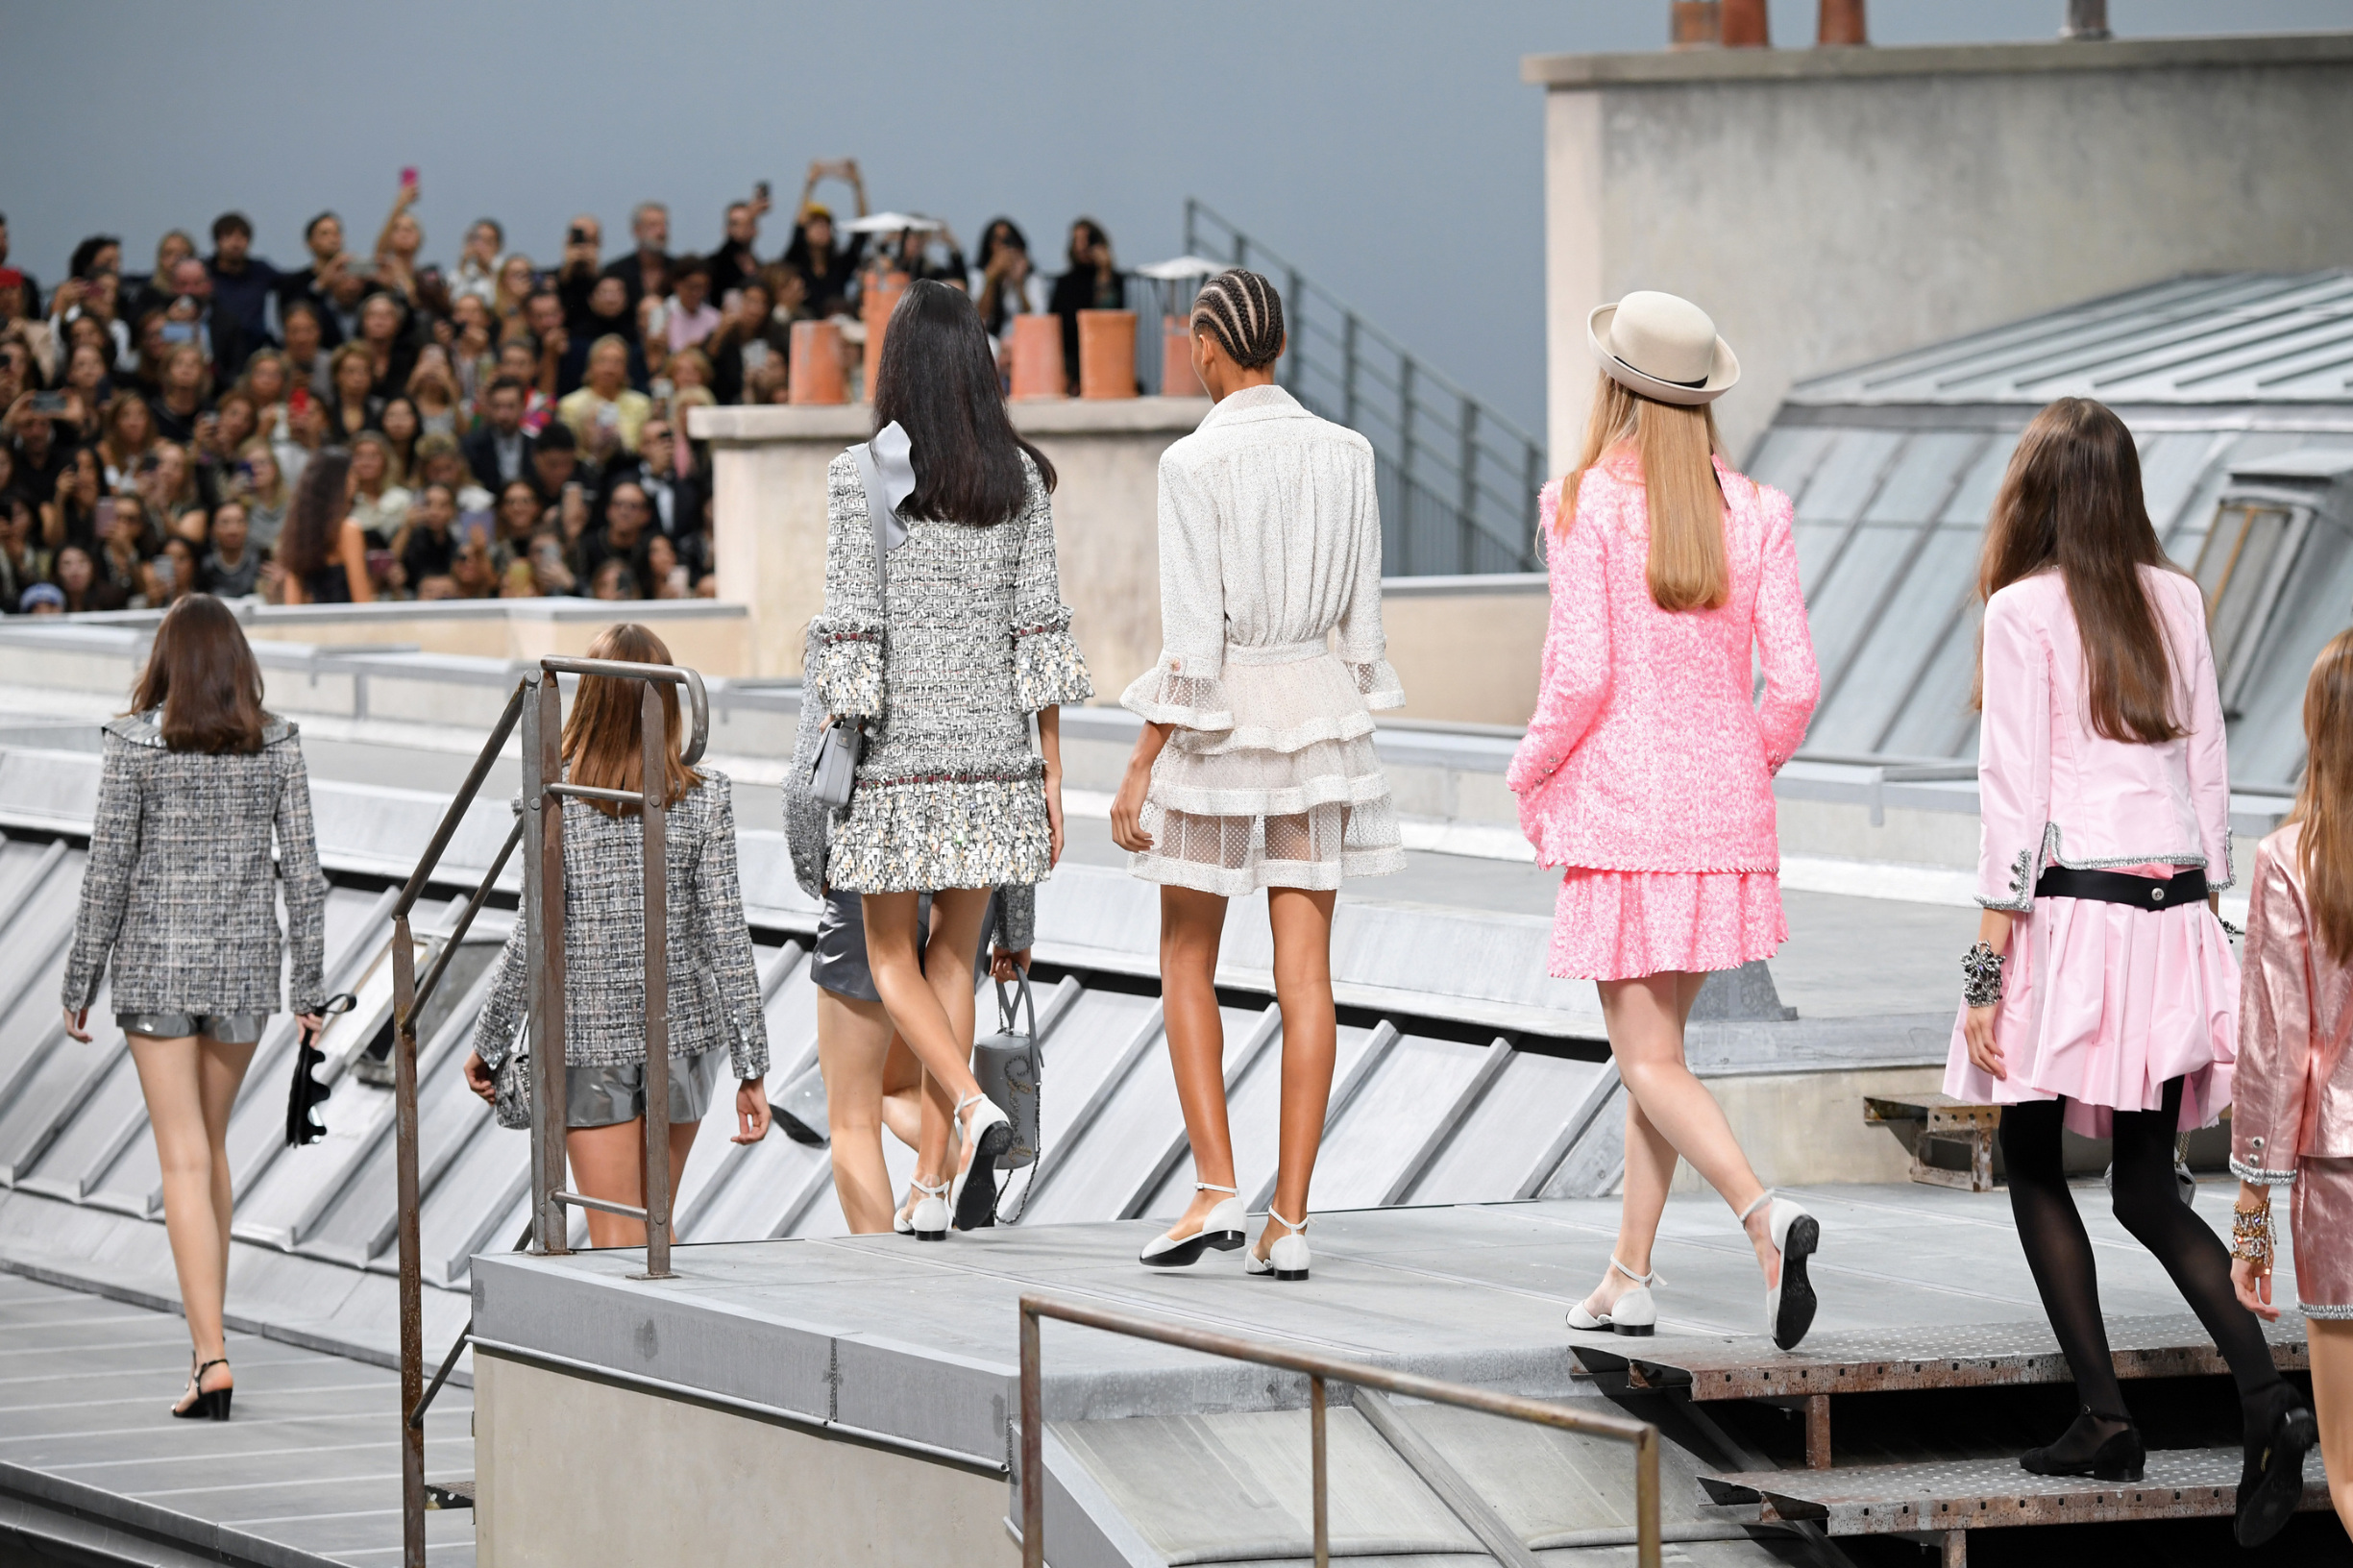 PARIS, FRANCE - OCTOBER 01: Models walk the runway during the Chanel Womenswear Spring/Summer 2020 show as part of Paris Fashion Week on October 01, 2019 in Paris, France. (Photo by Pascal Le Segretain/Getty Images)